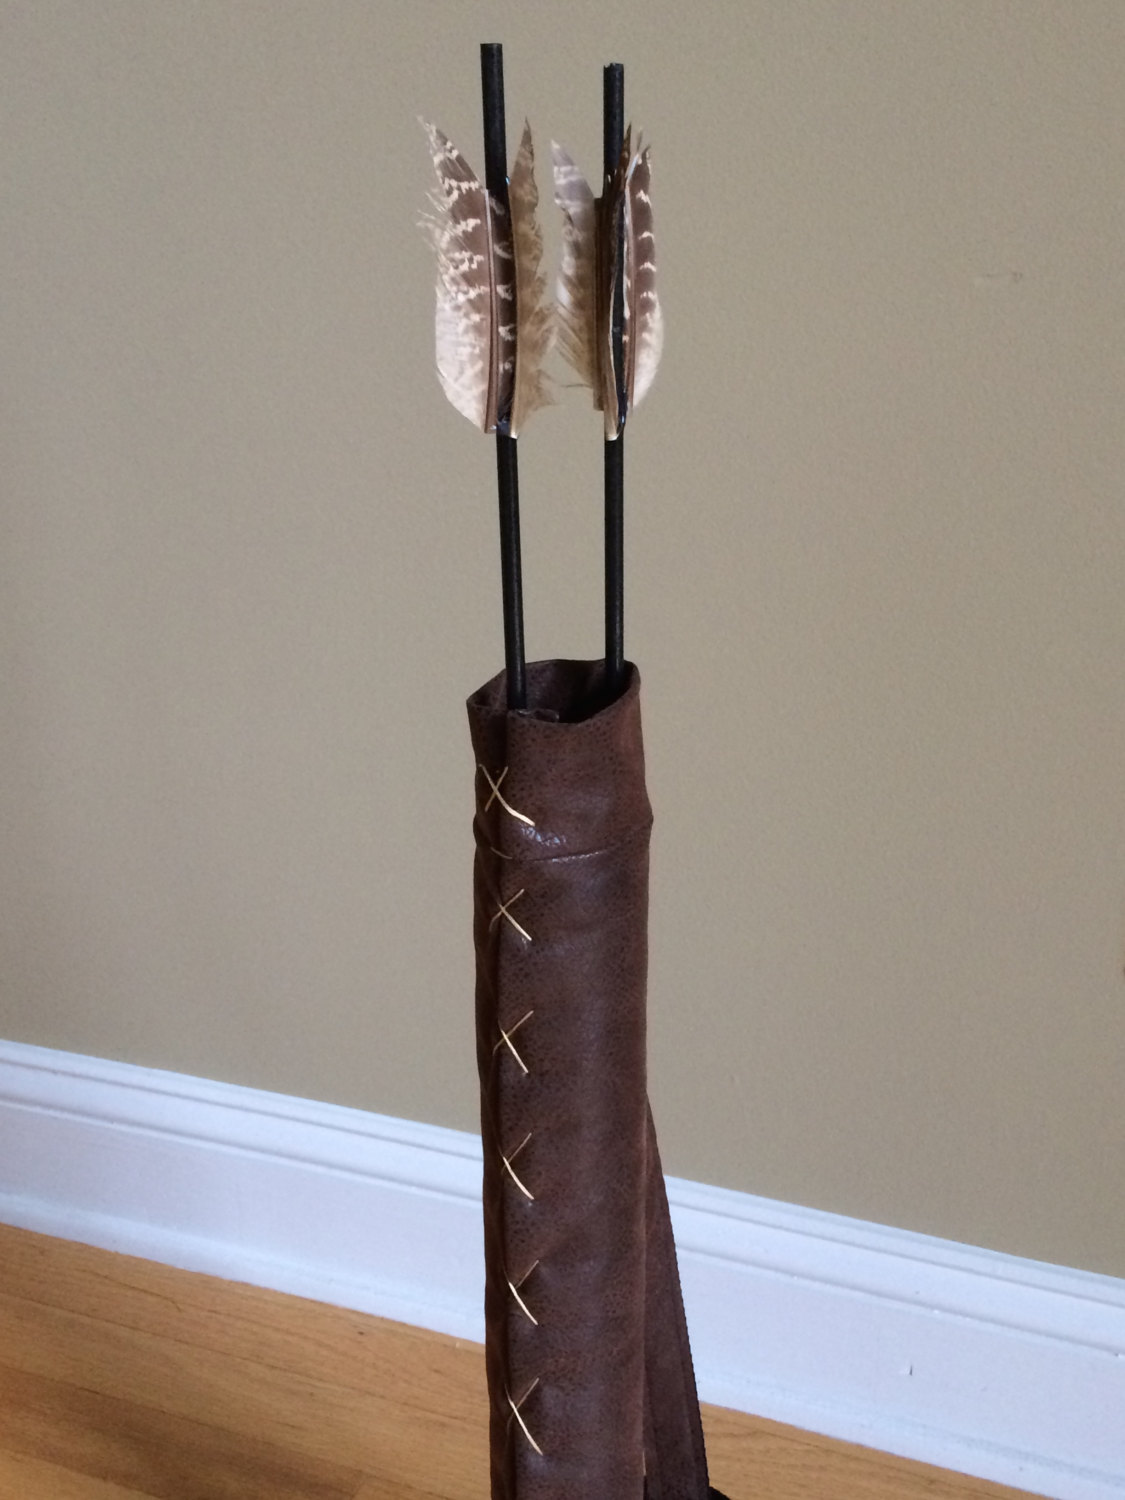 Costume quiver: dark brown faux leather quiver w/ short prop arrows, enhances costumes for hunger games, renaissance, lord of rings, katniss